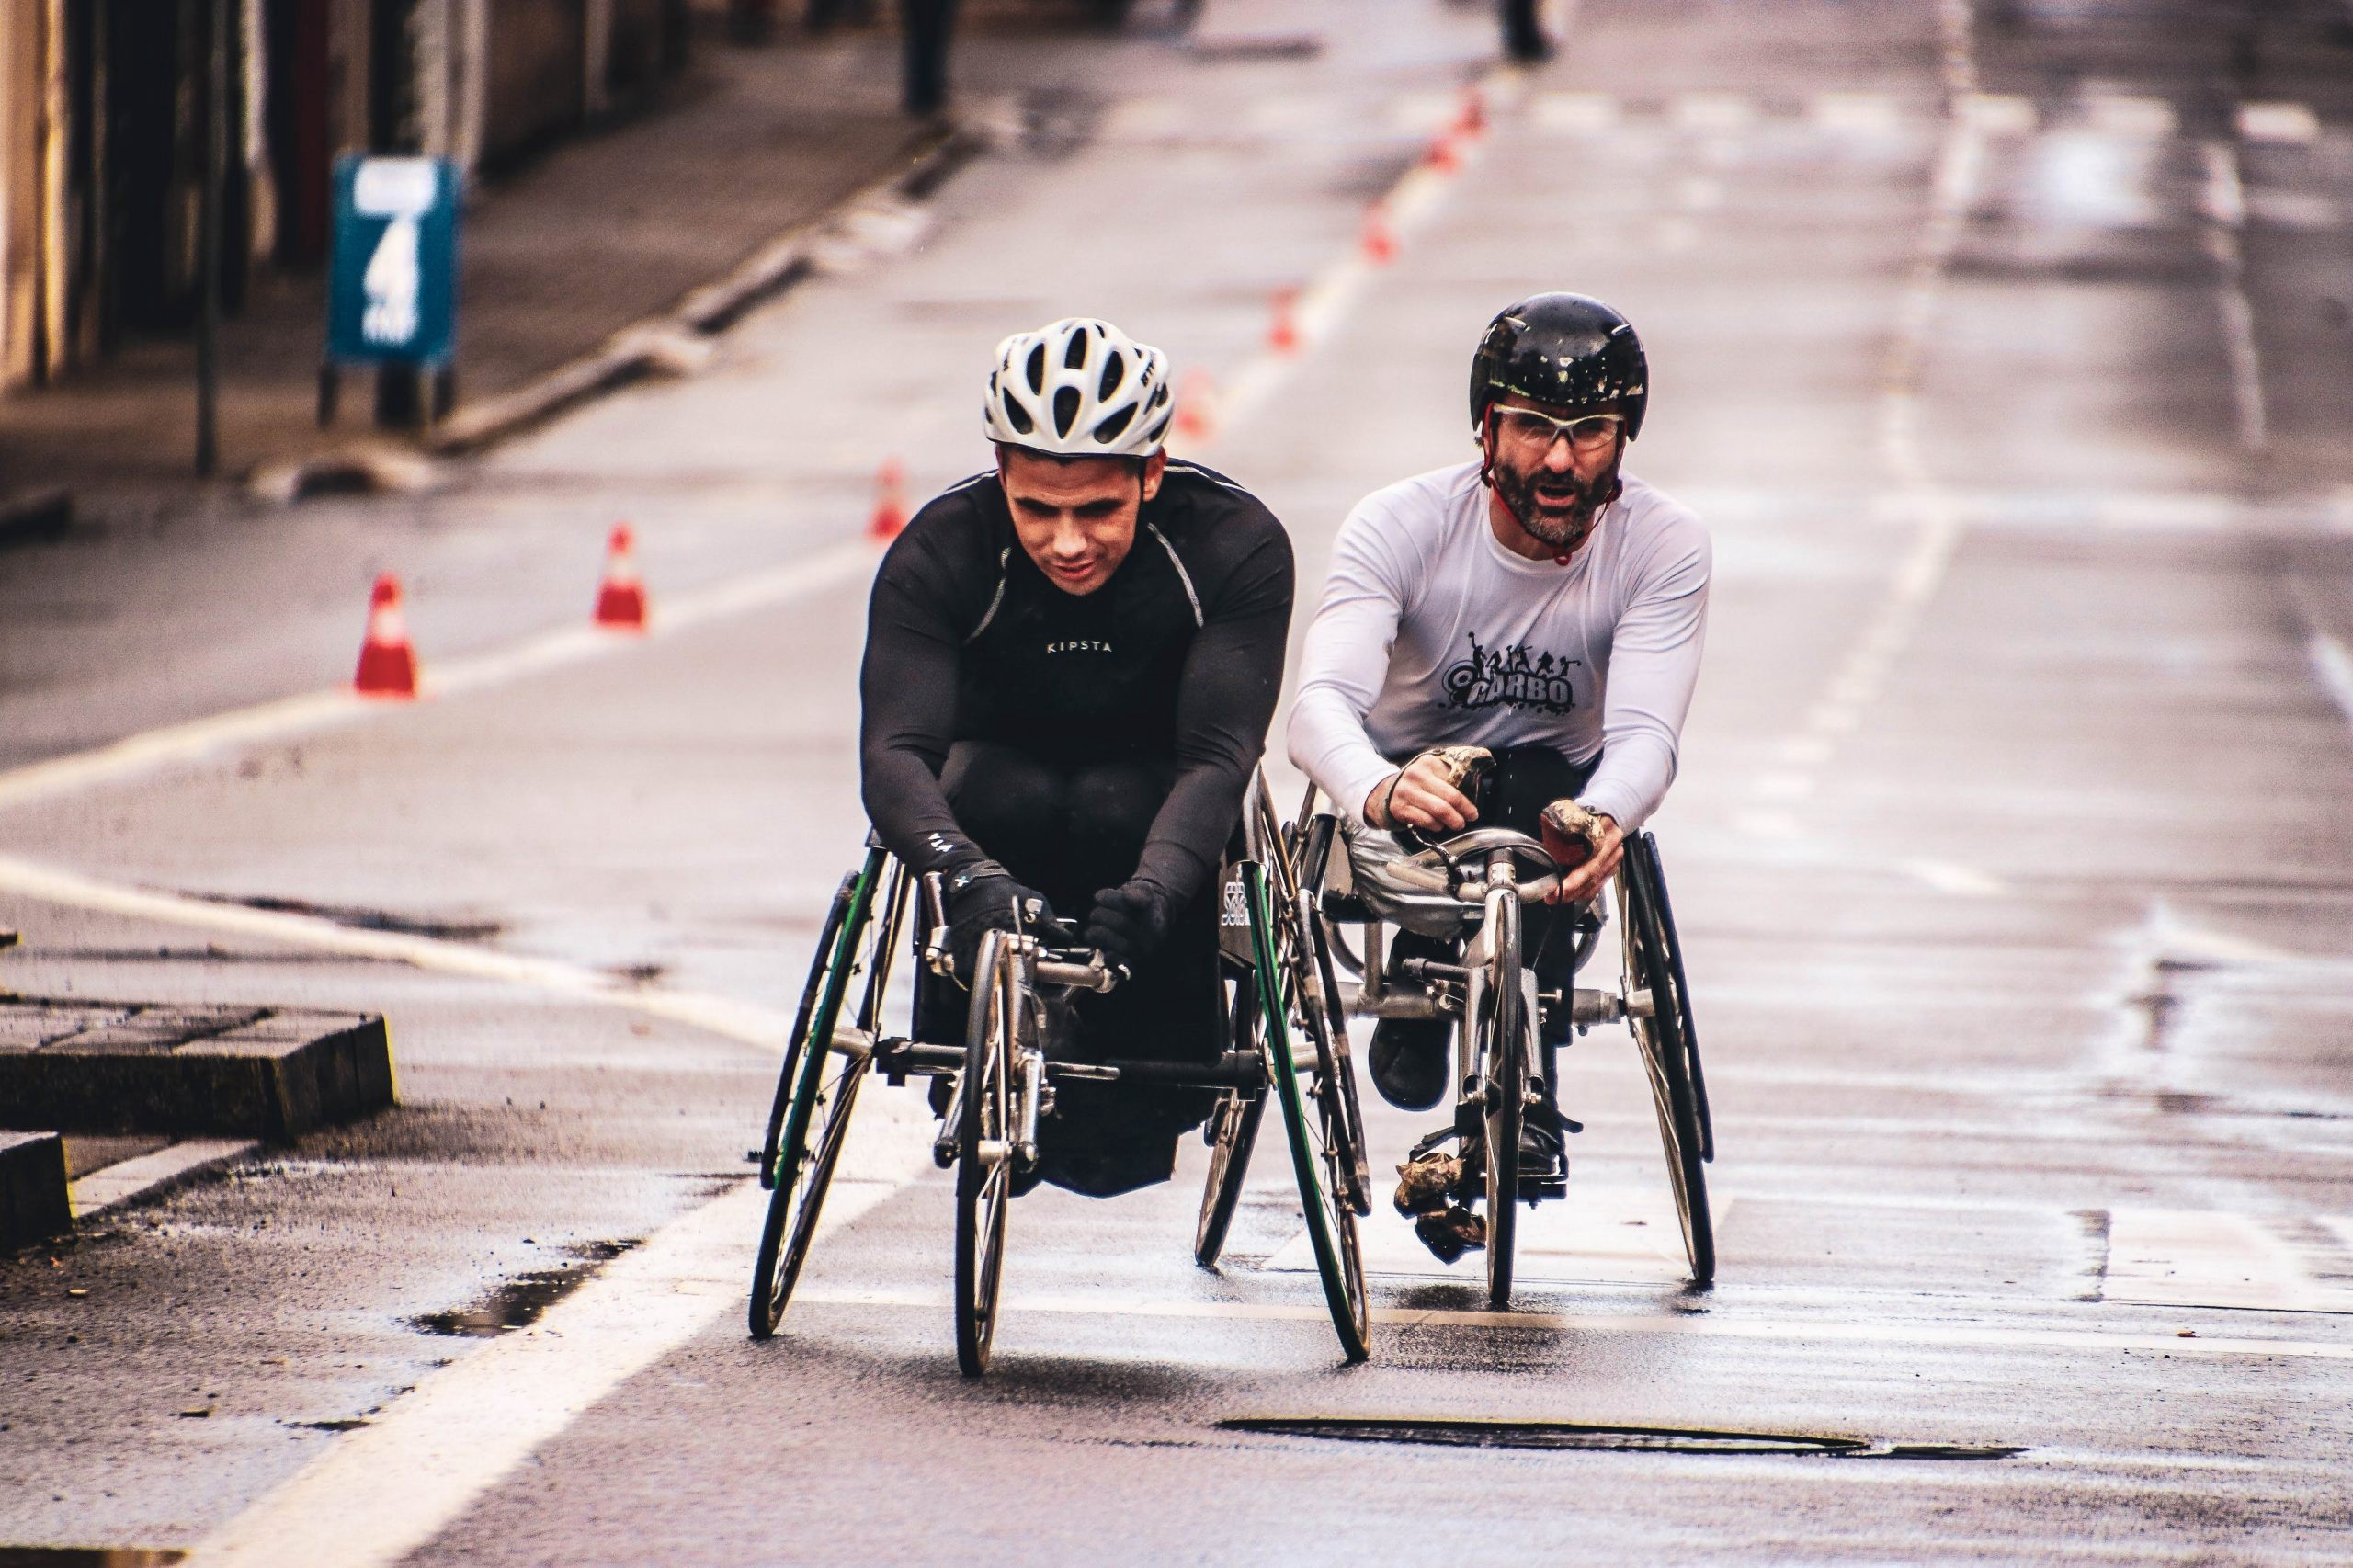 Why we should listen to the disabled community on resilience and flexibility | Rouzbeh Pirouz